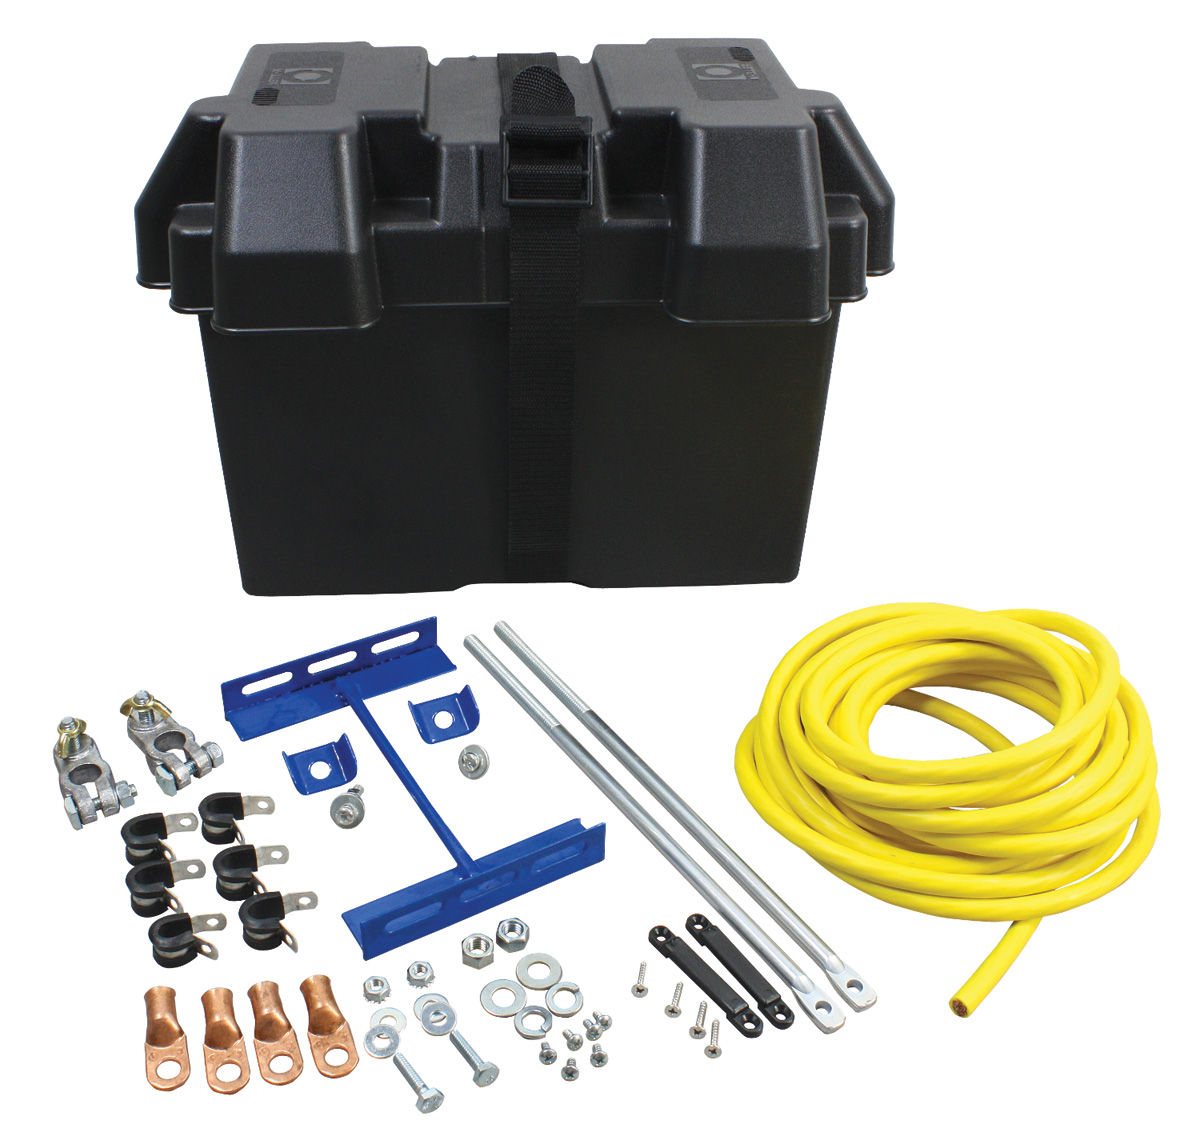 Battery Kit, Trunk Mount